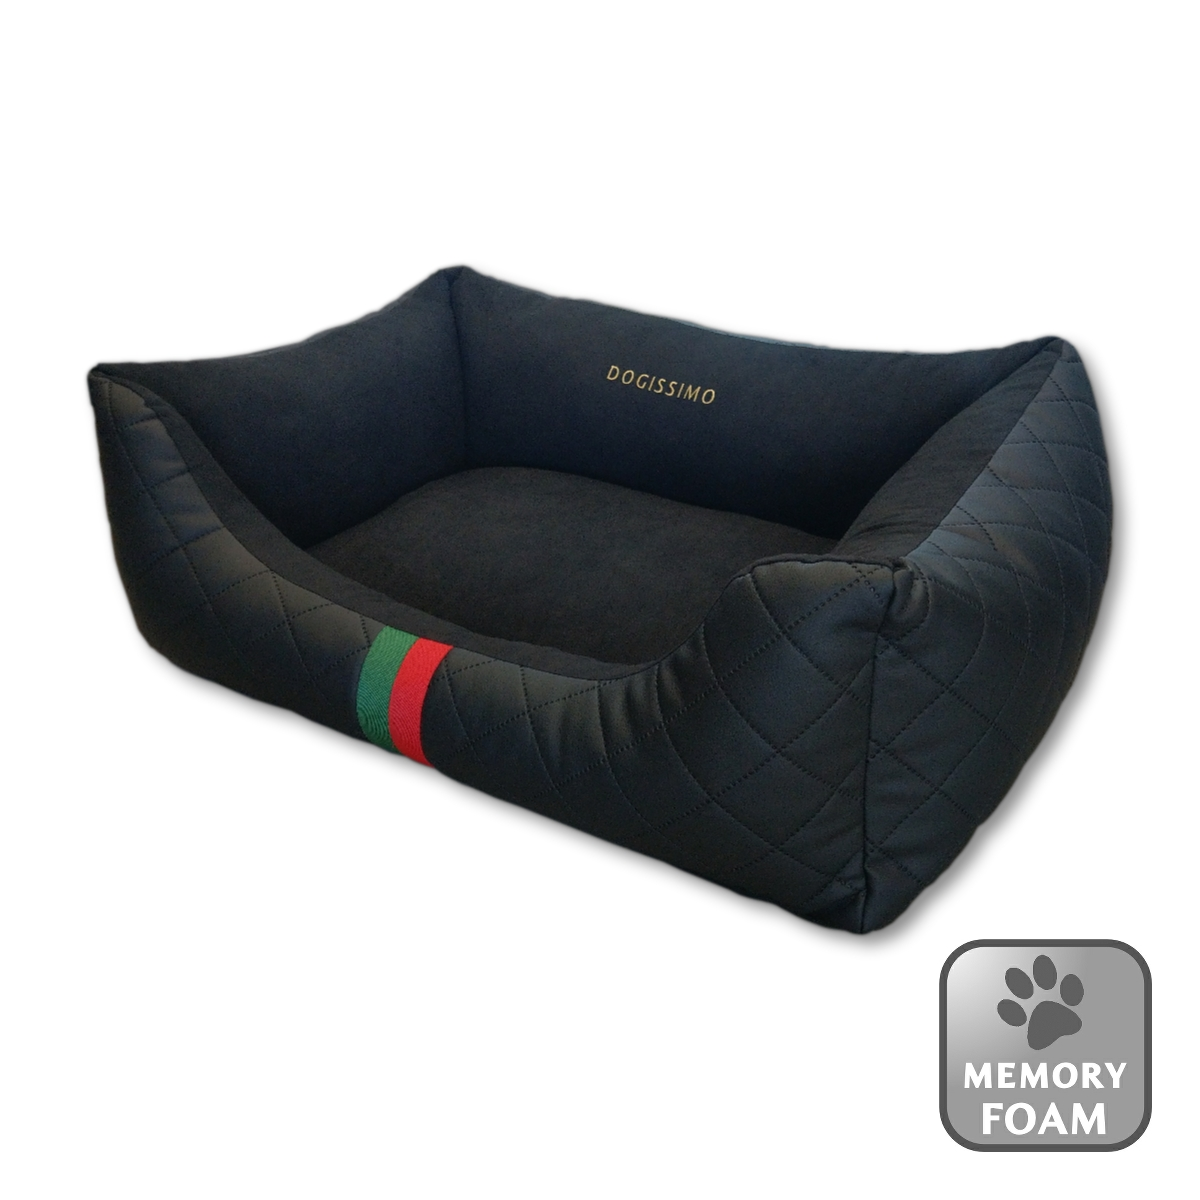 Dogissimo Roma Sofa Bed in Black